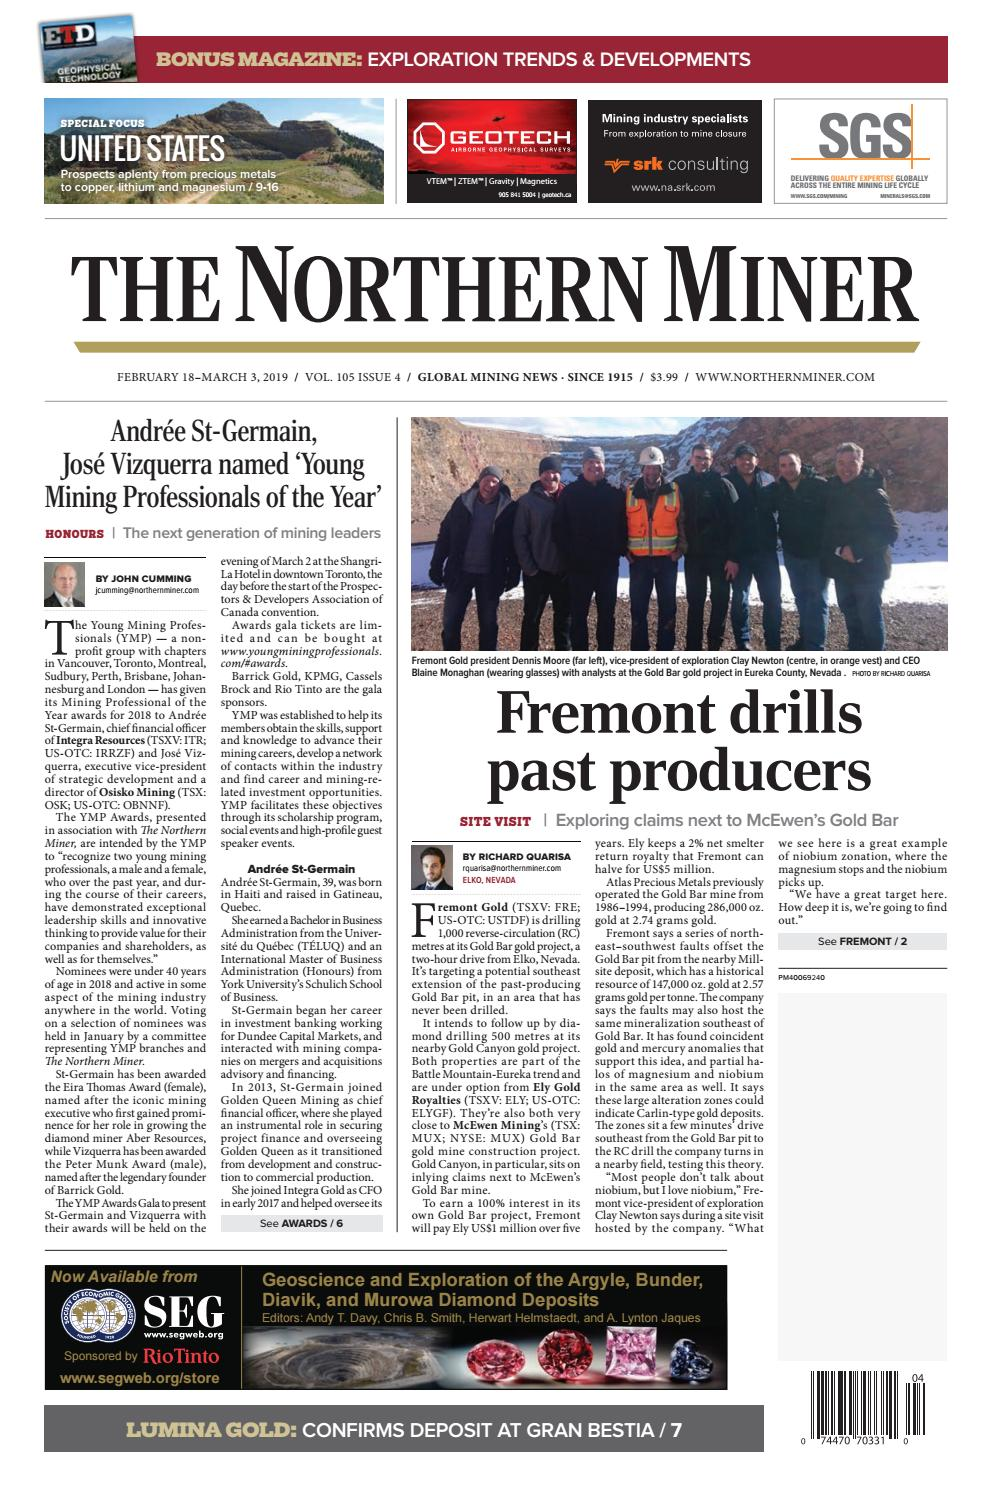 165 Niocorp Appoints Mr Mark A Smith  >> The Northern Miner February 18 2019 Issue 4 By The Northern